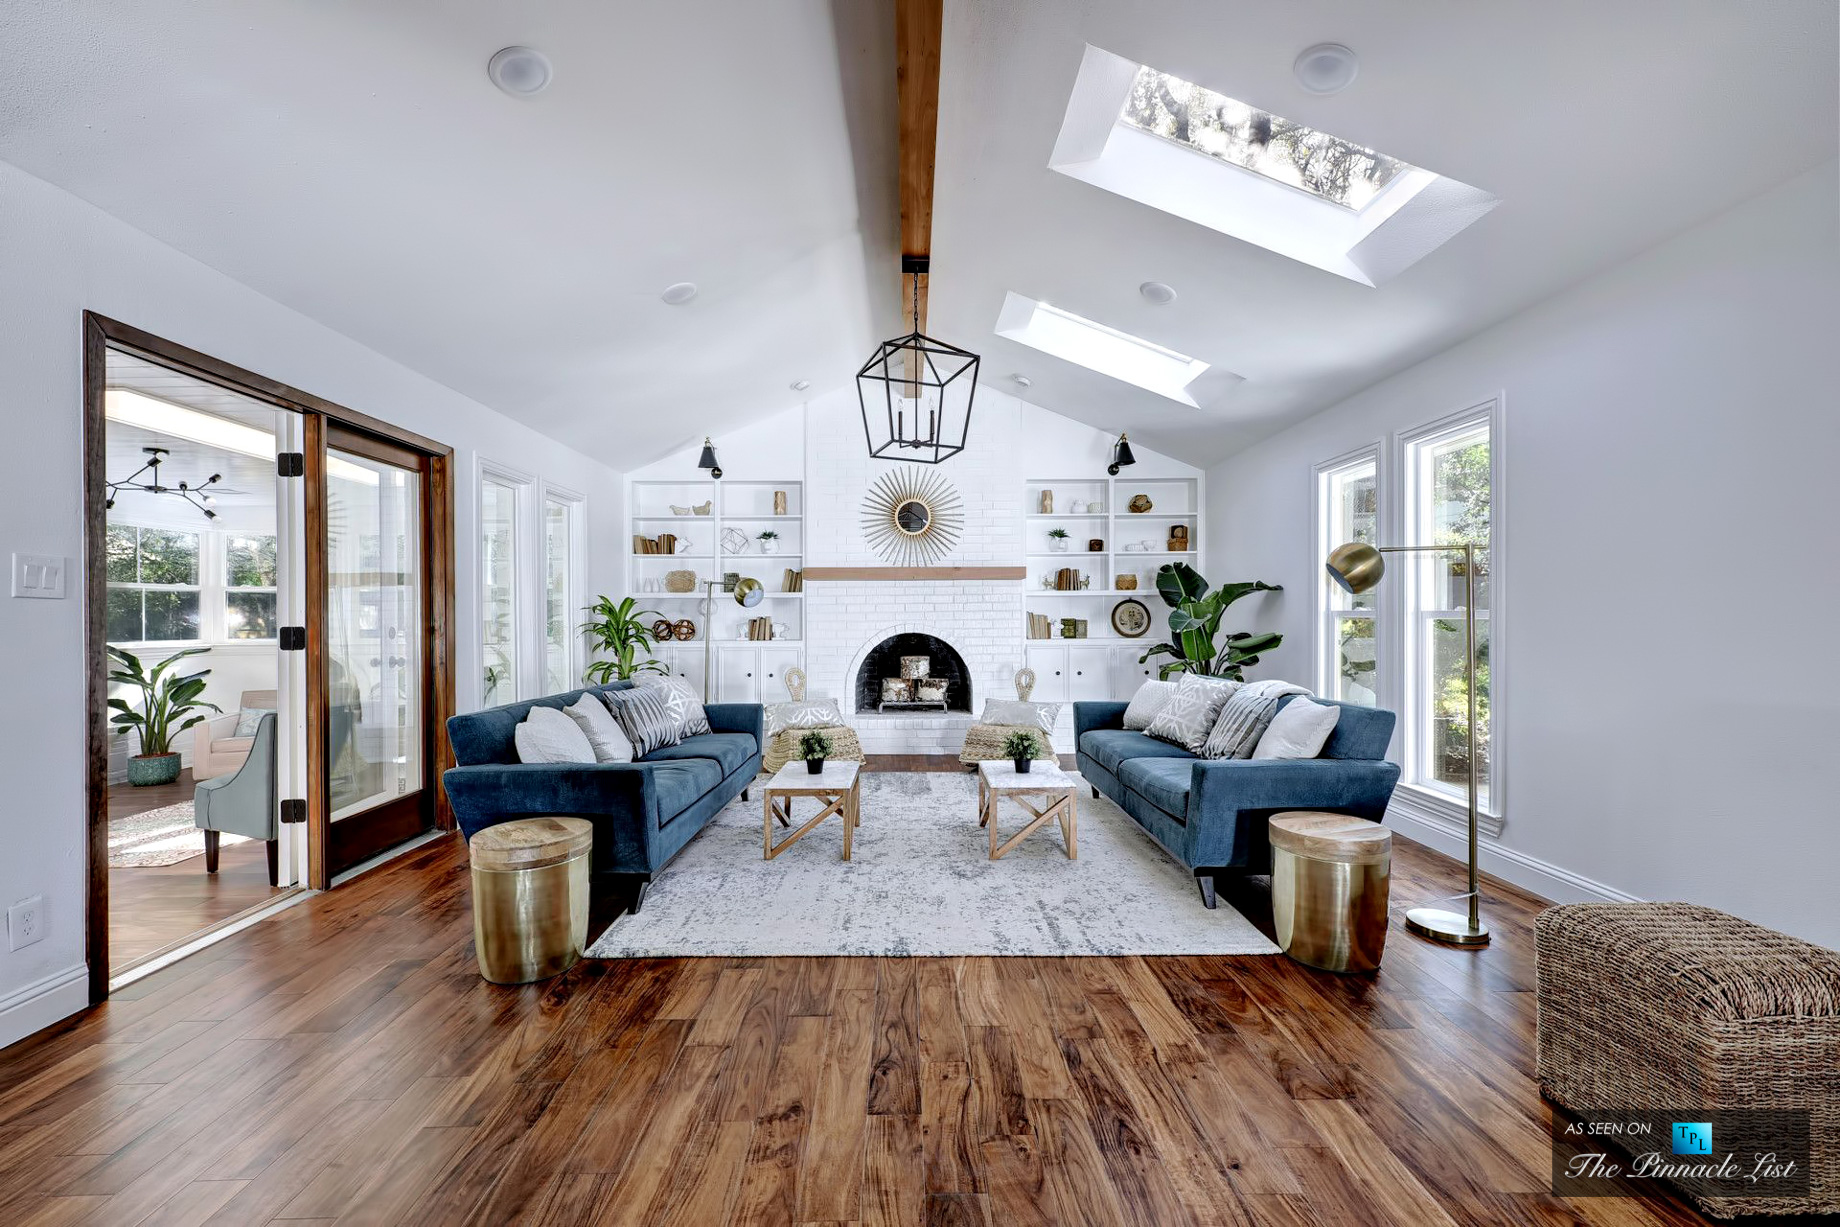 Going Sustainable Makes Sense - Top 6 Home Renovation Trends To Lookout For This Year